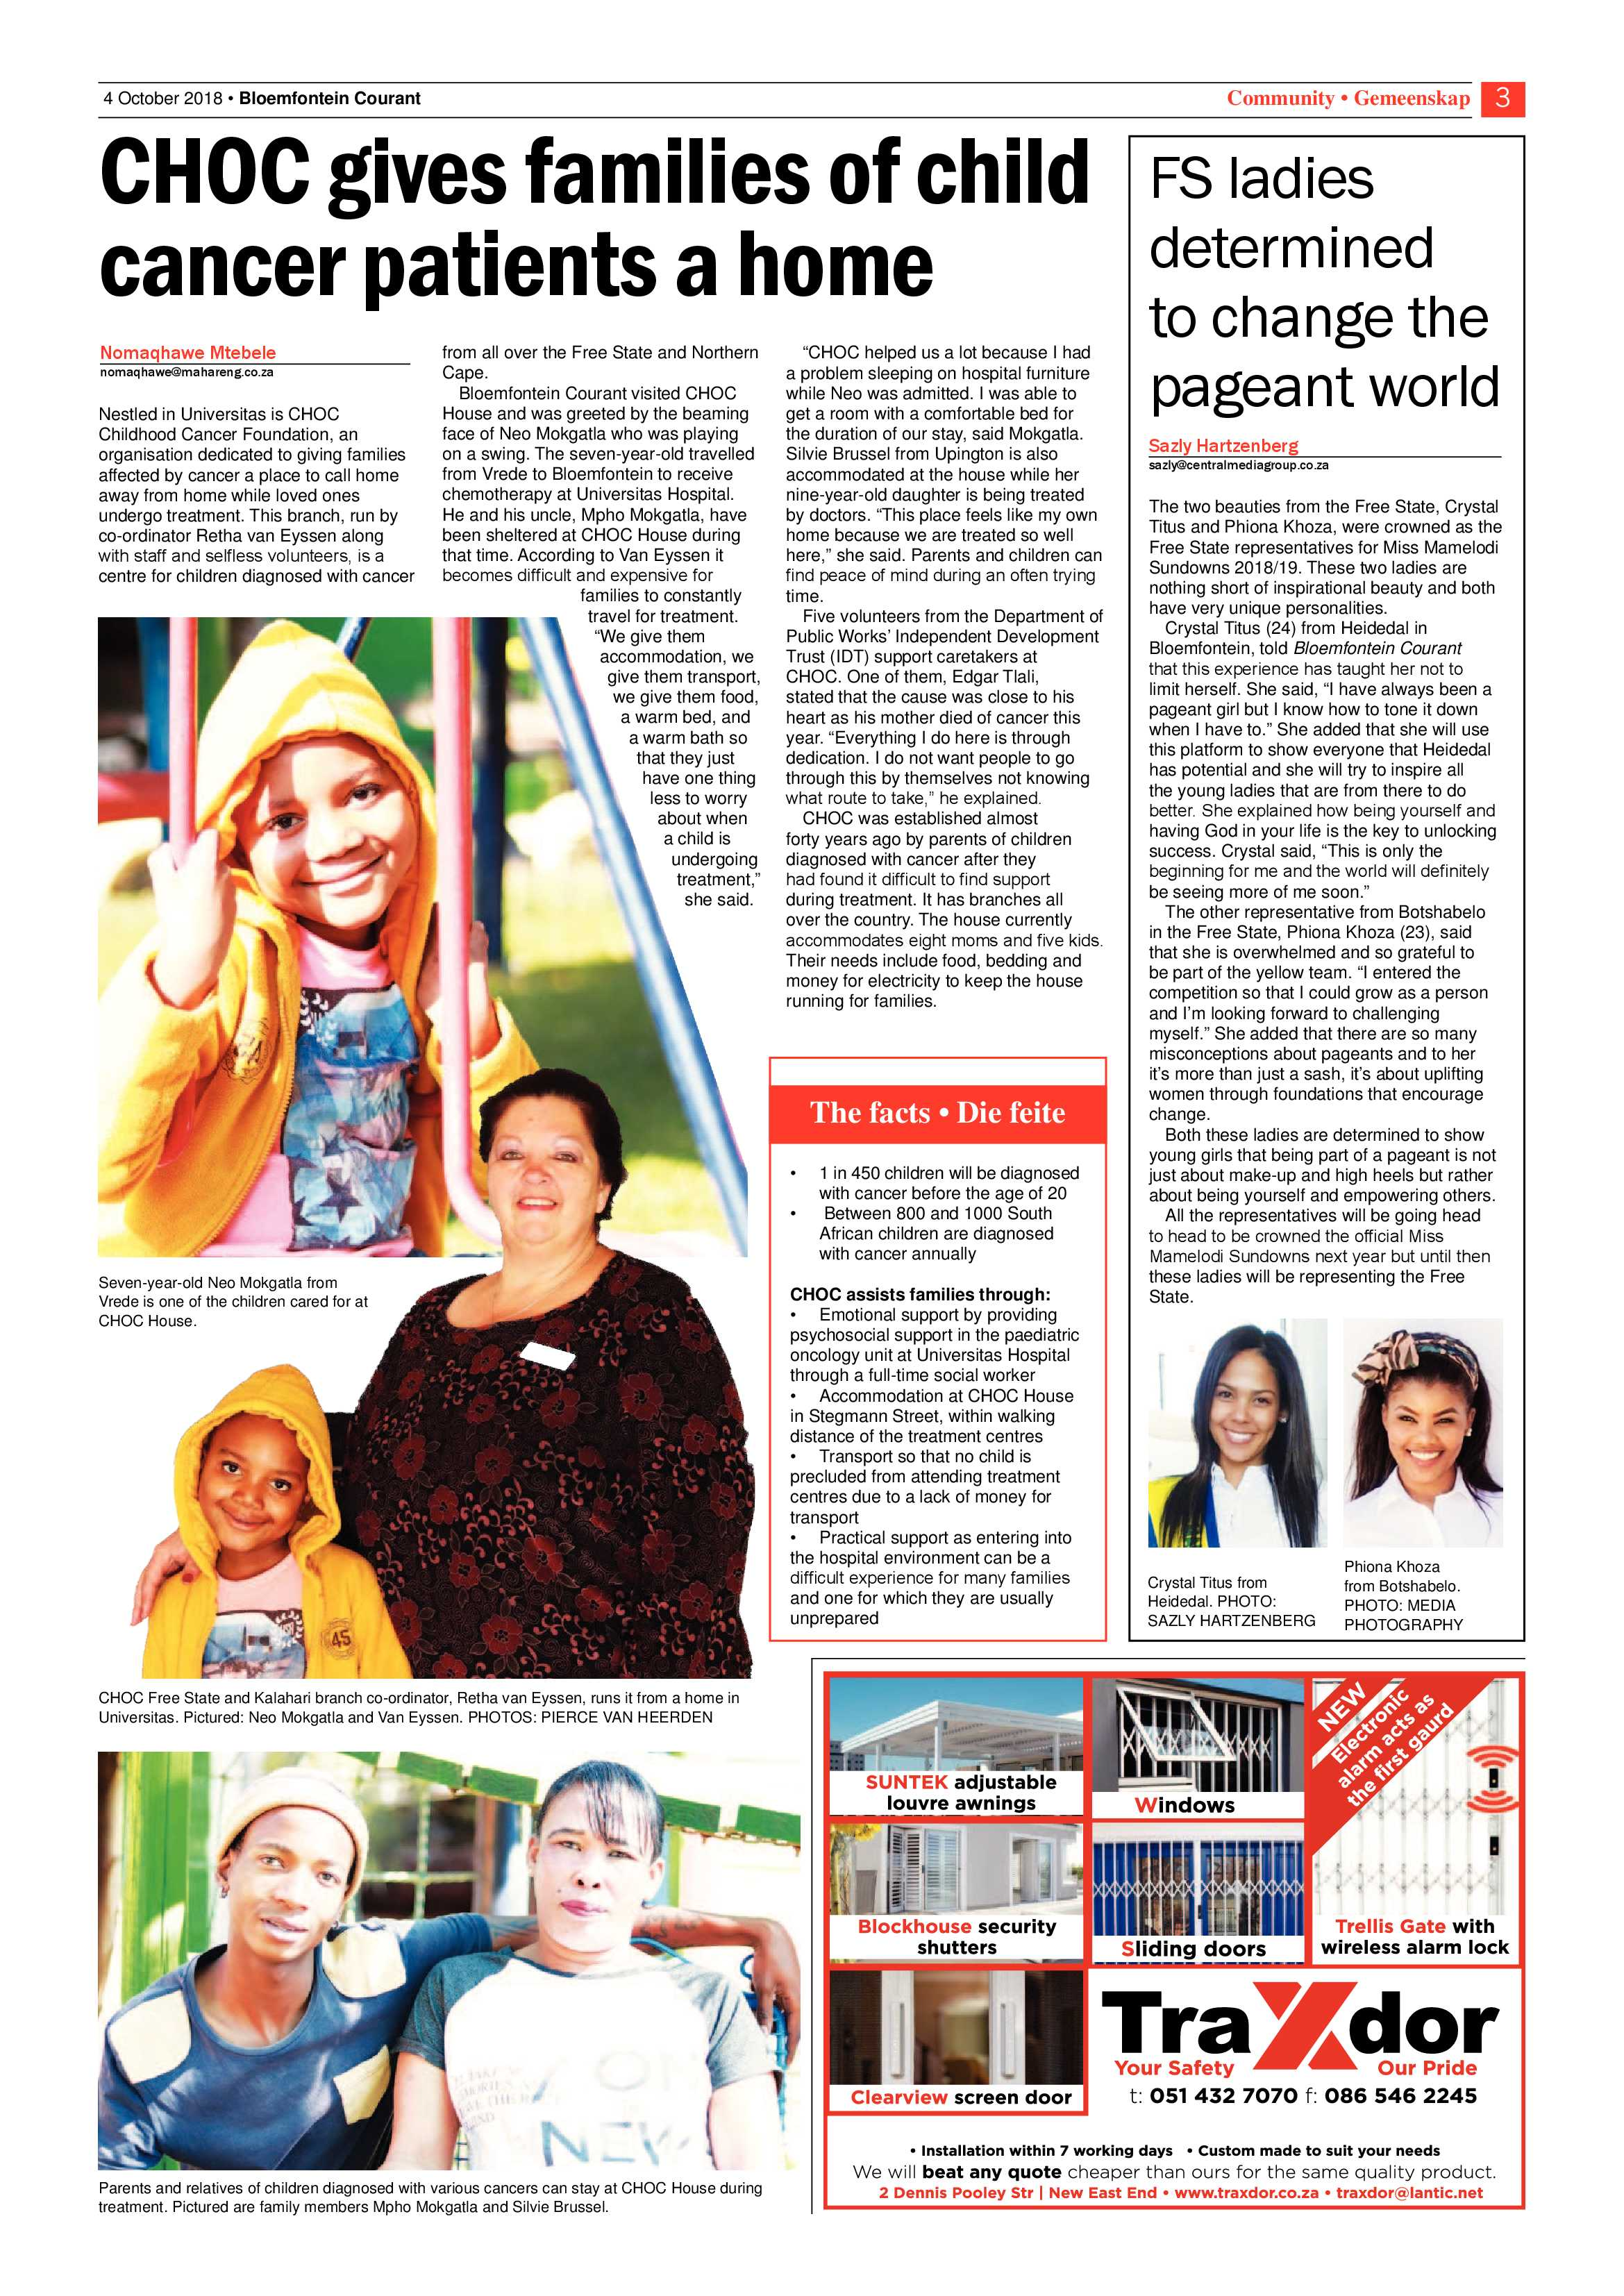 courant-04-october-2018-epapers-page-3